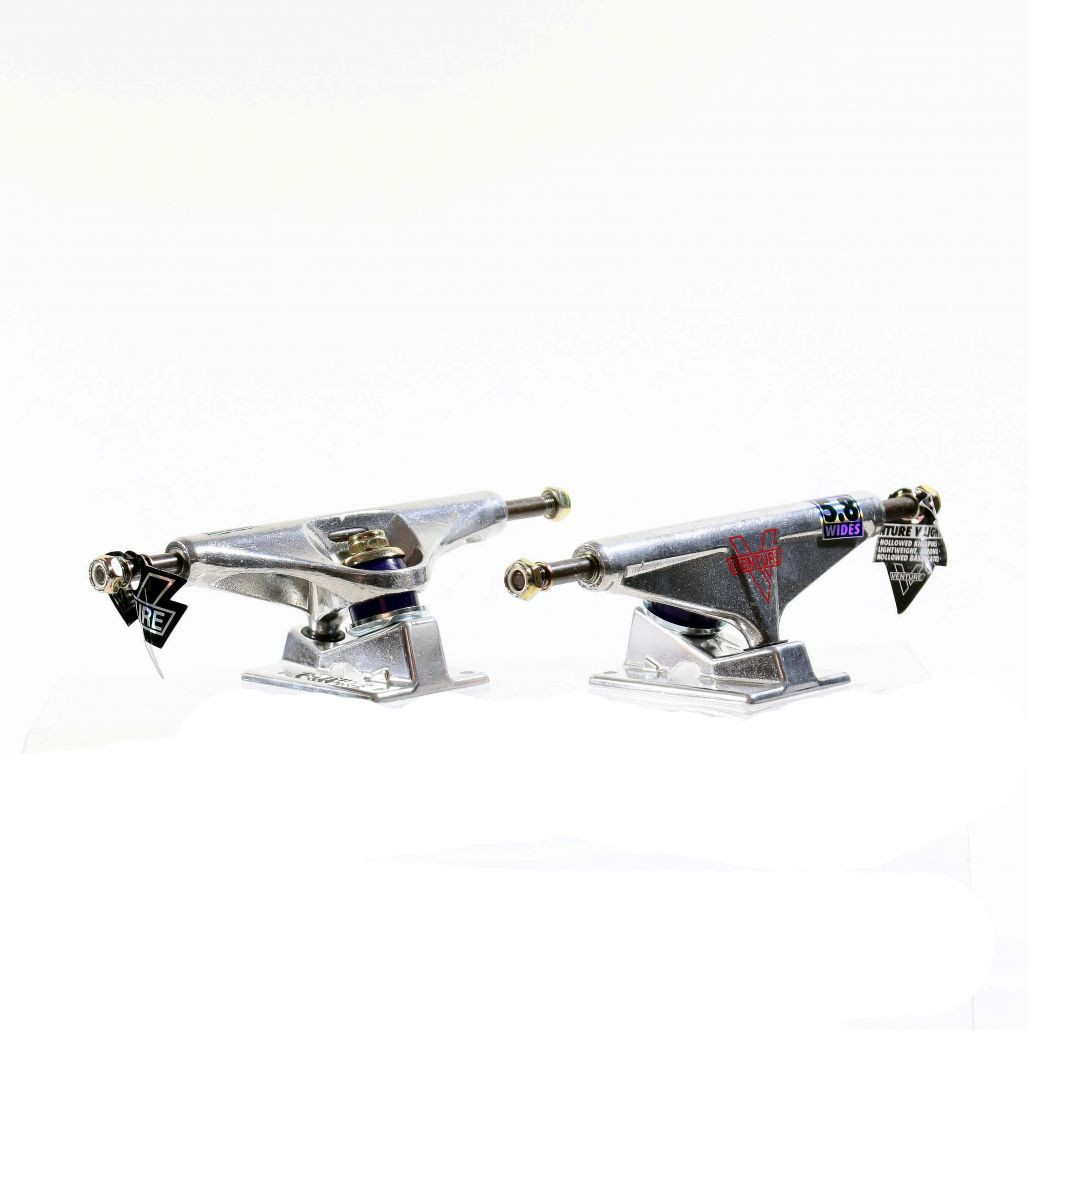 Truck Skate Venture ALL POLISHED V-LT - 5,8 Hi- (149mm)